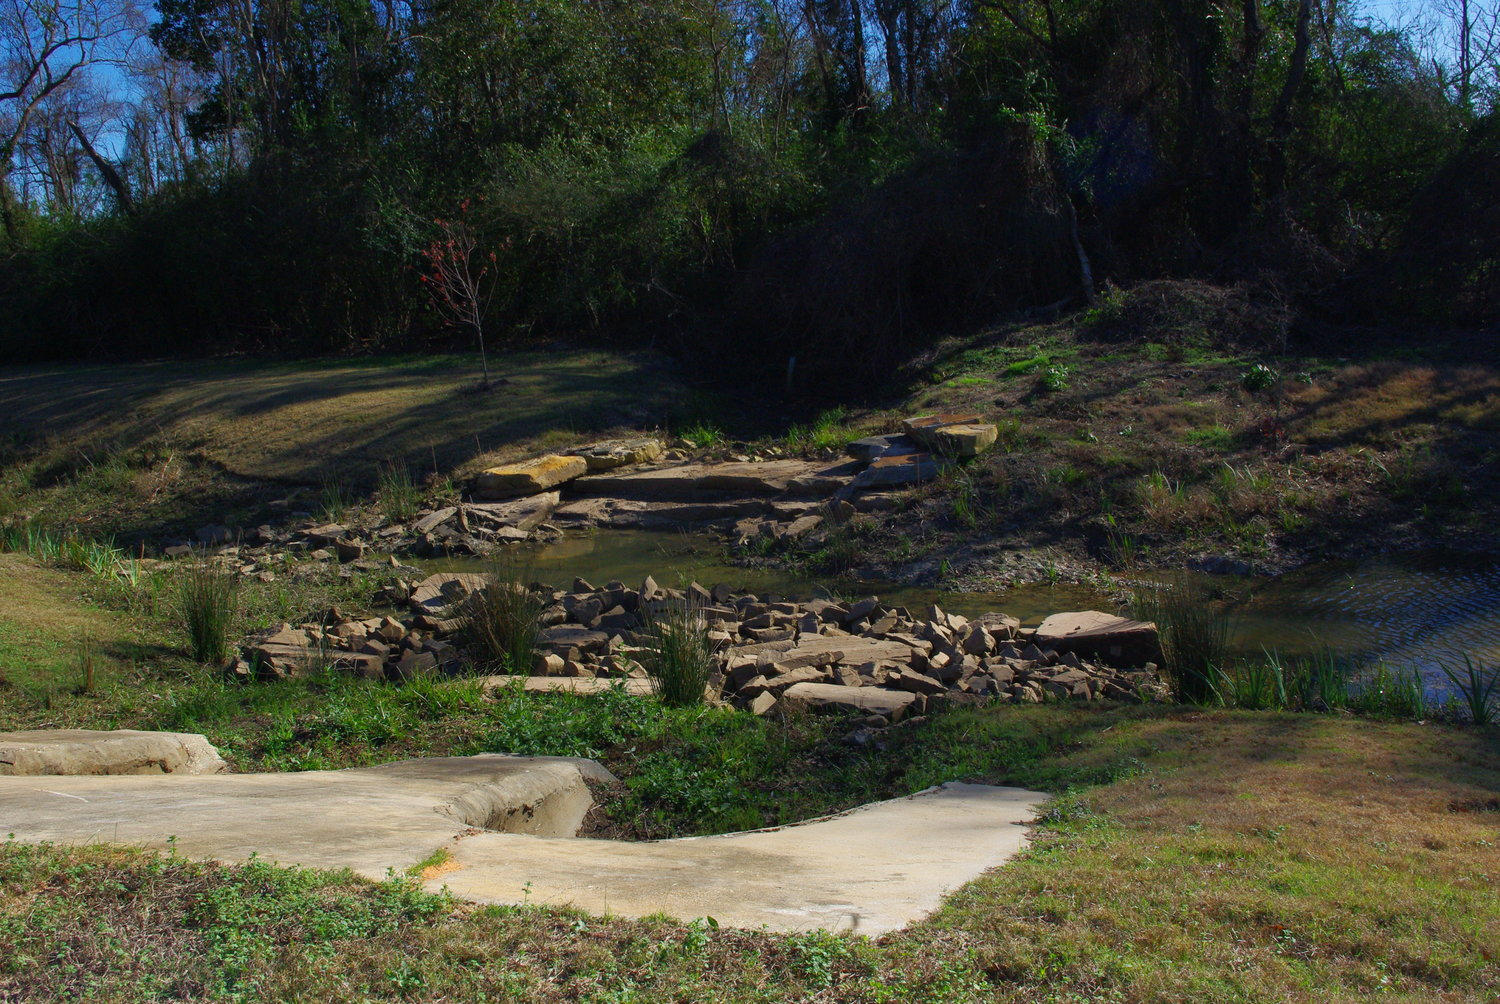 Rock formations are part of the environmental project at Wells Road in Daphne. The rocks slow water flow, reducing erosion.